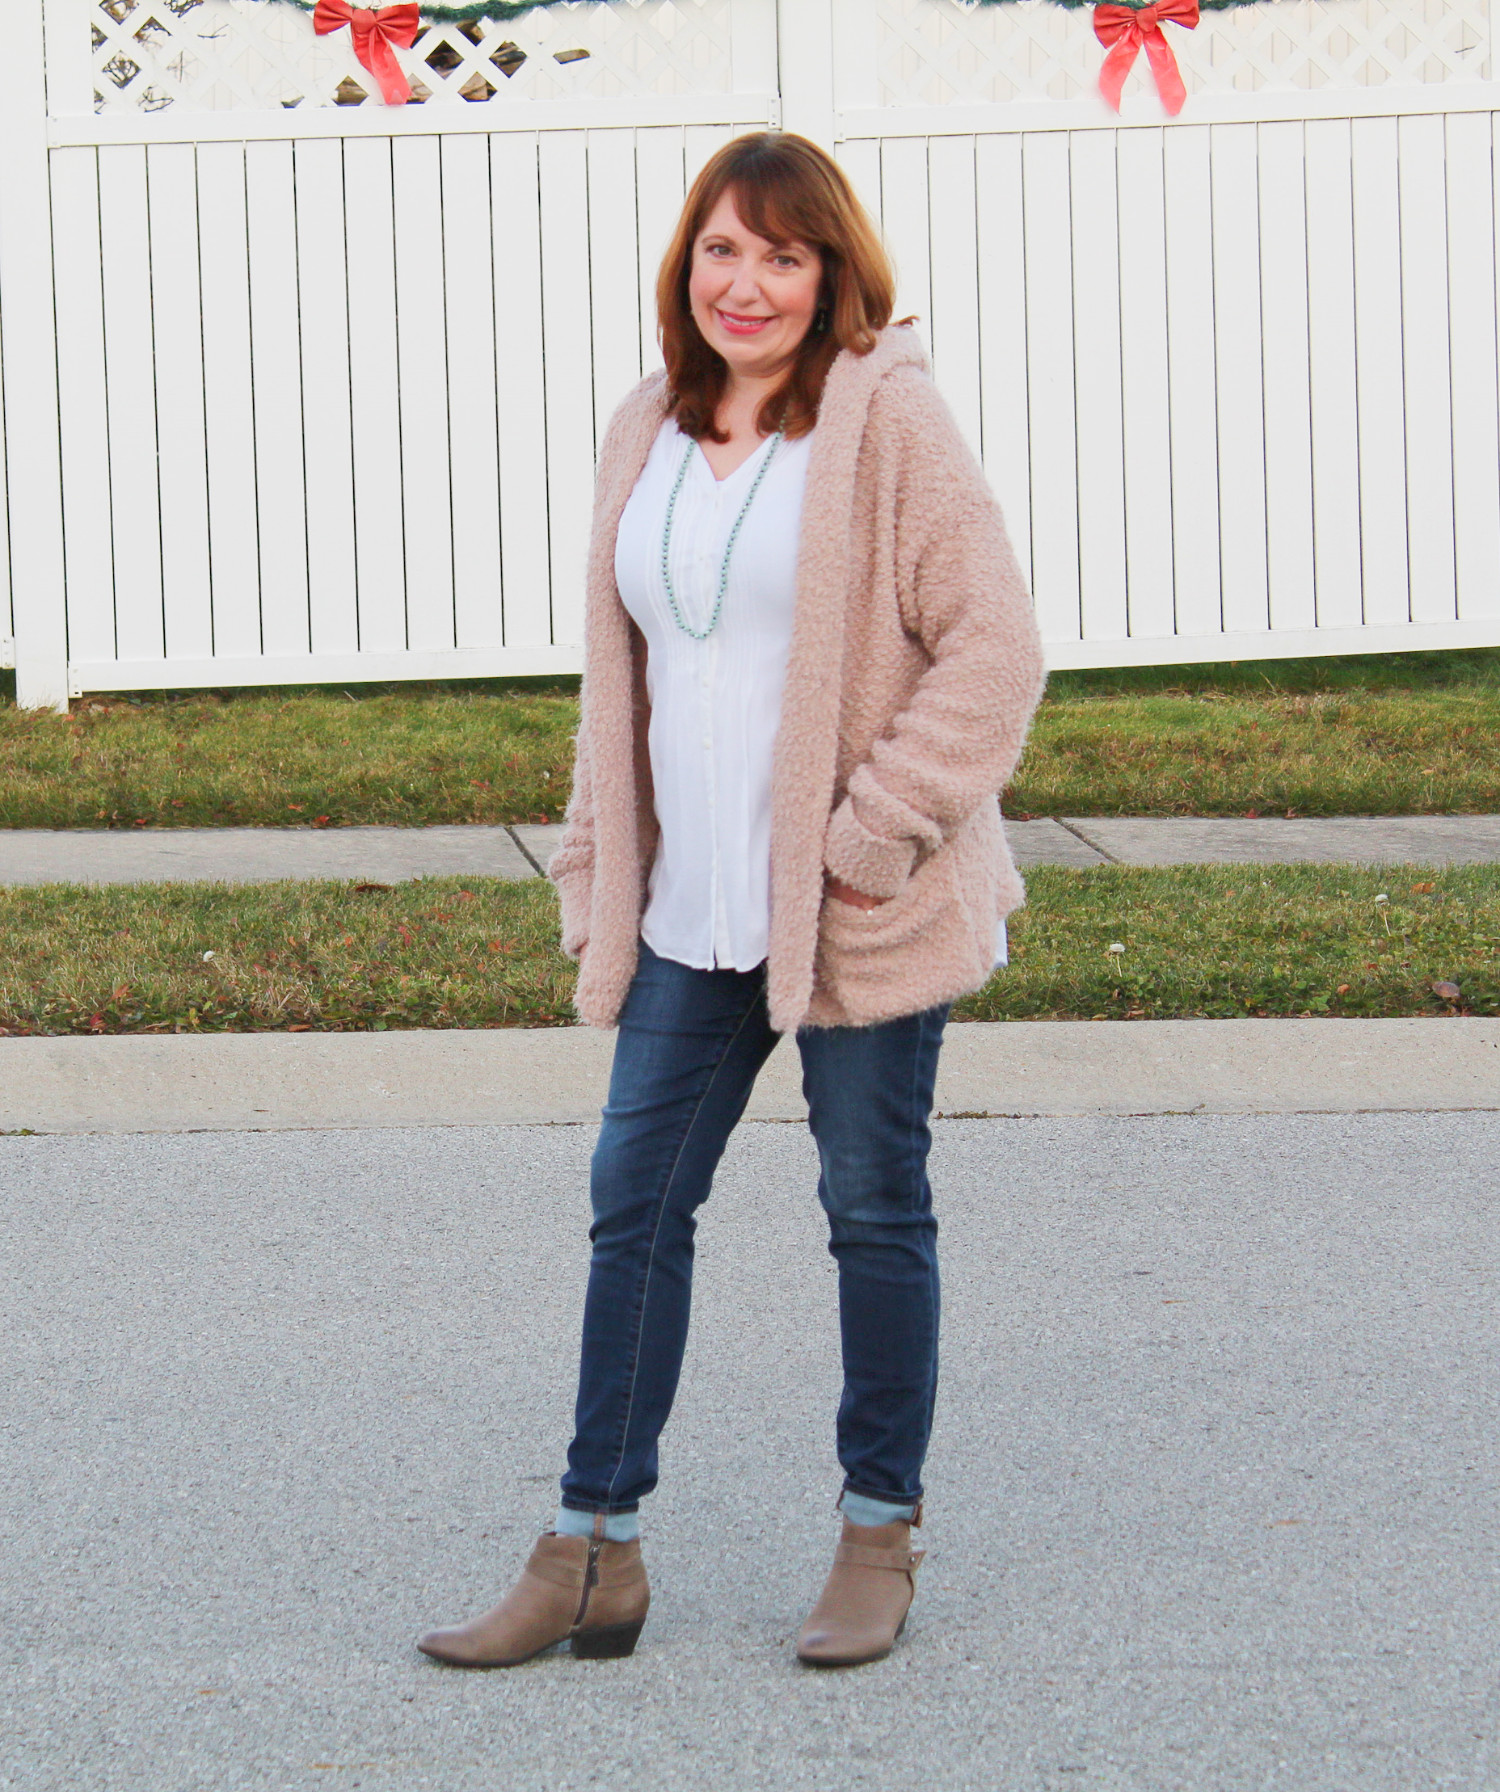 Hooded Cardigan And Articles Of Society Jeans